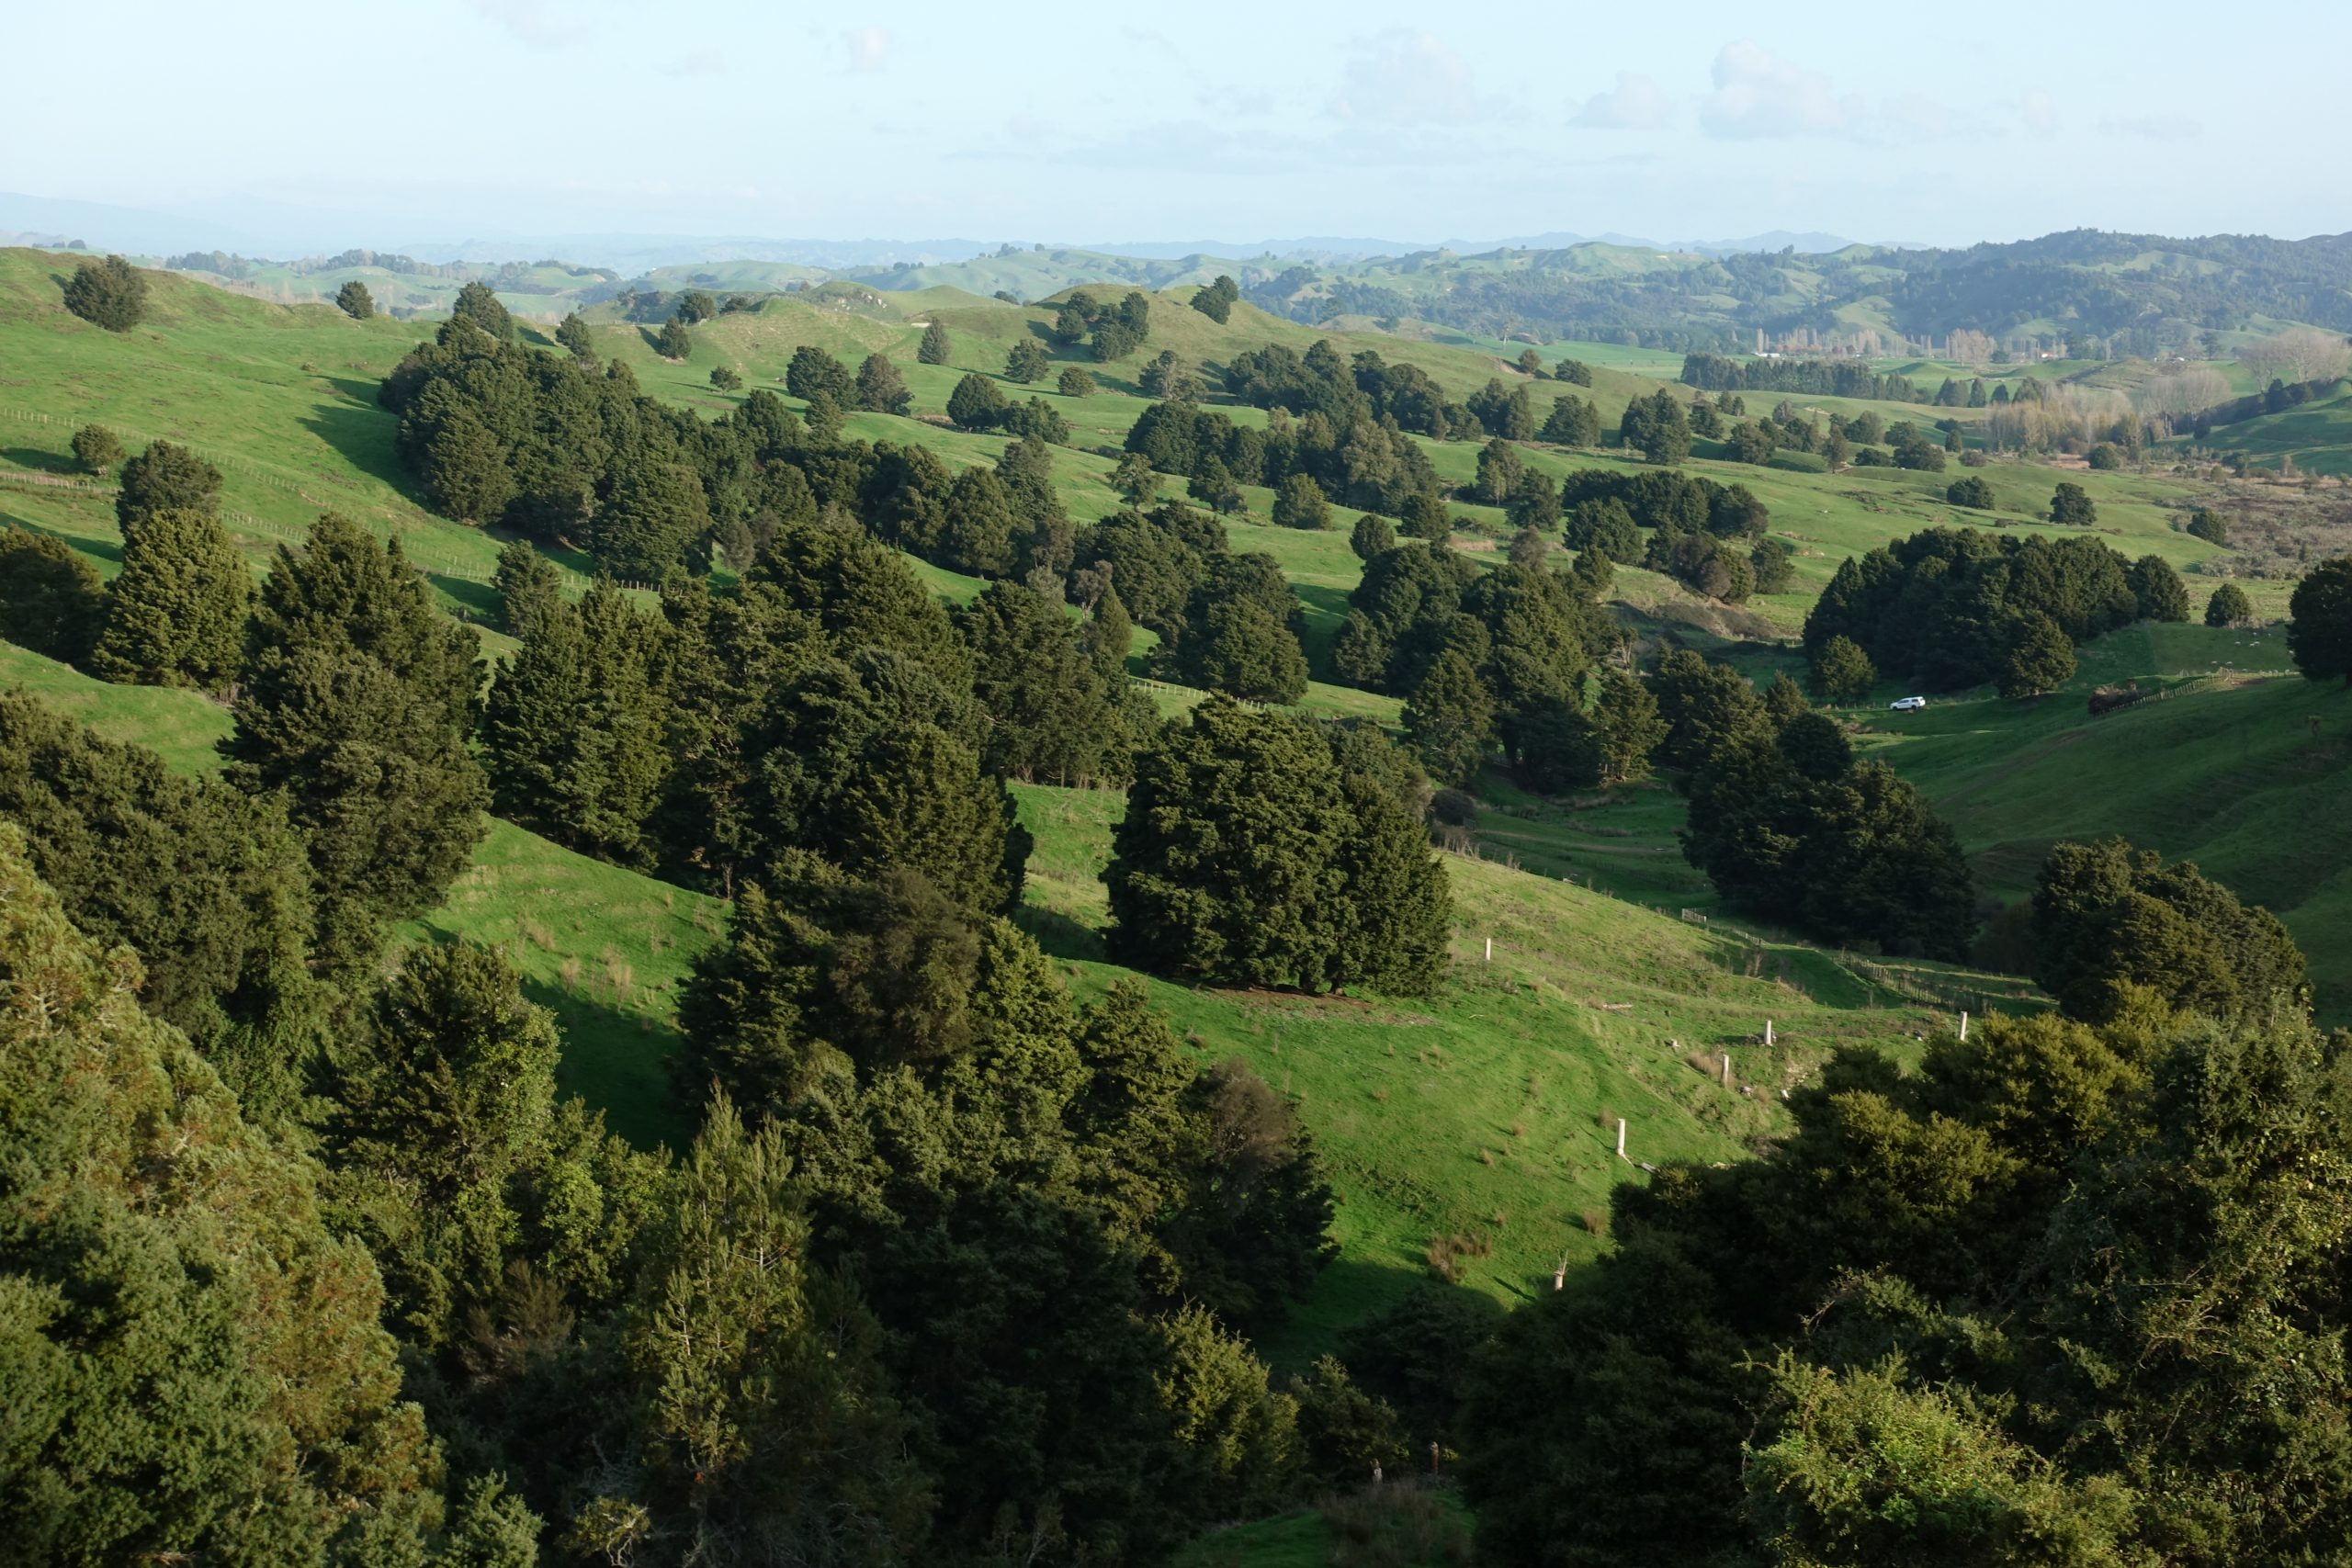 The Importance of Native Trees in Agroecosystems